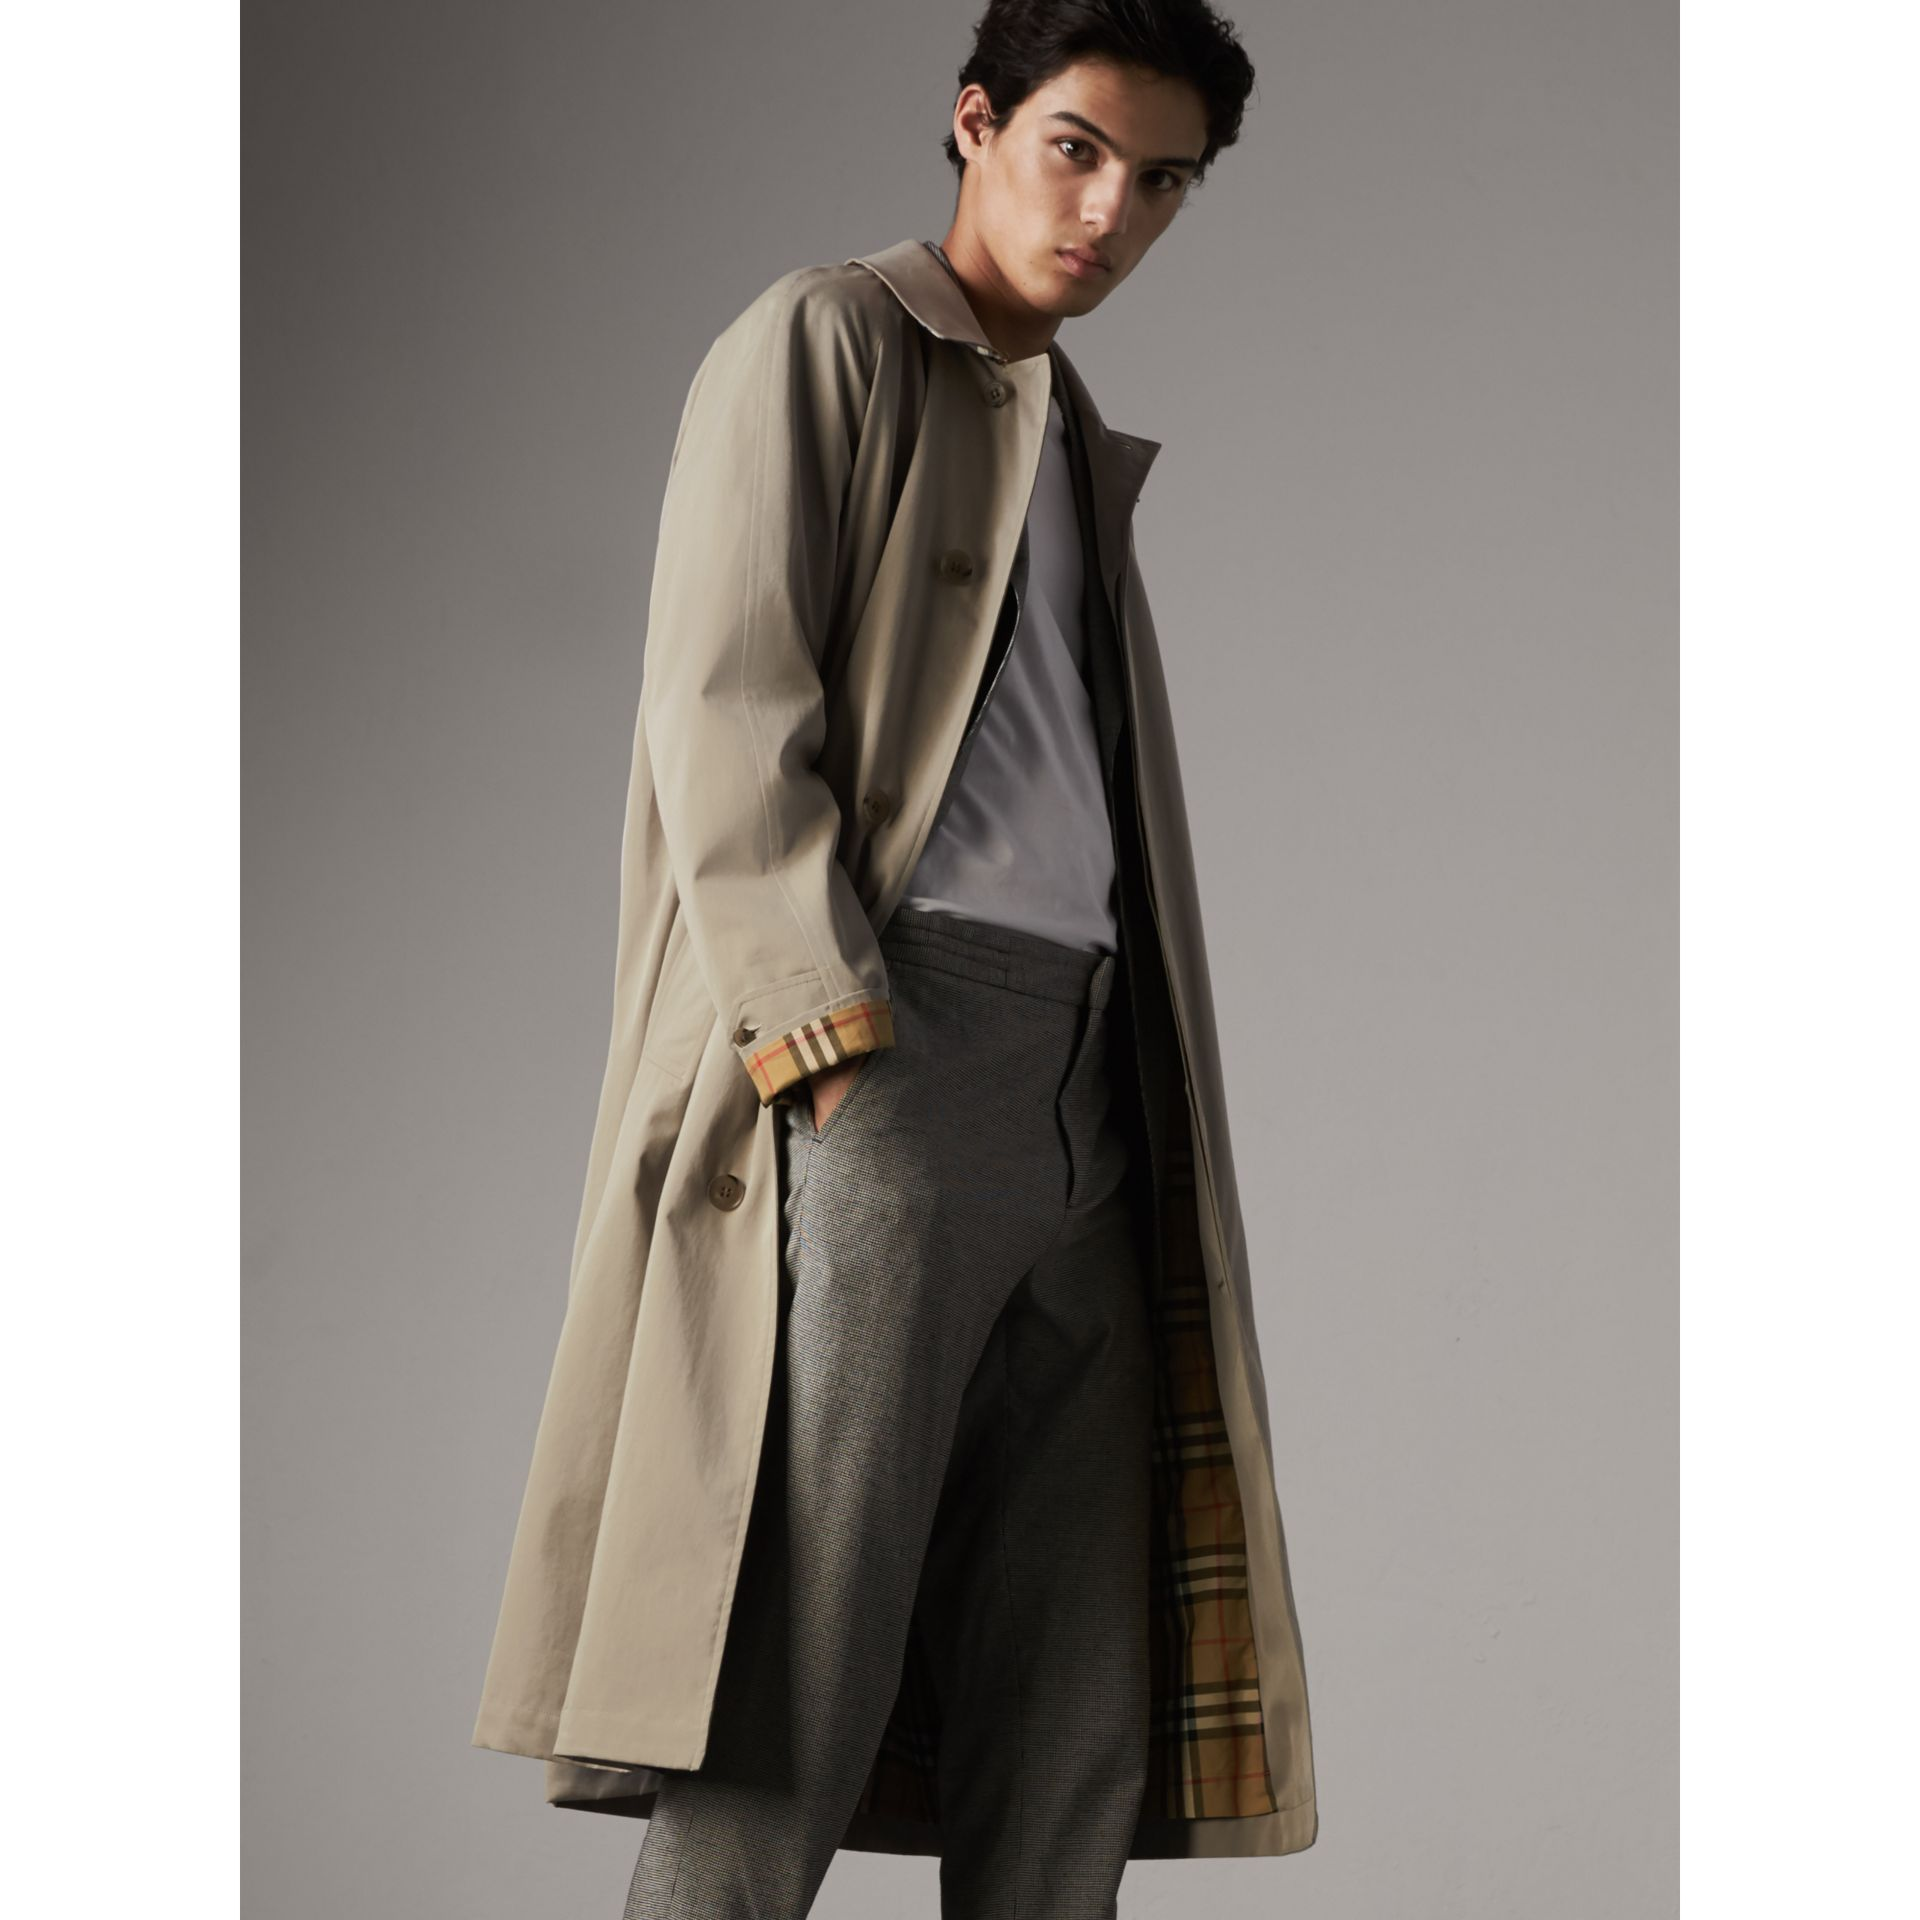 The Brighton – Extralanger Car Coat (Sandsteinfarben) - Herren | Burberry - Galerie-Bild 7